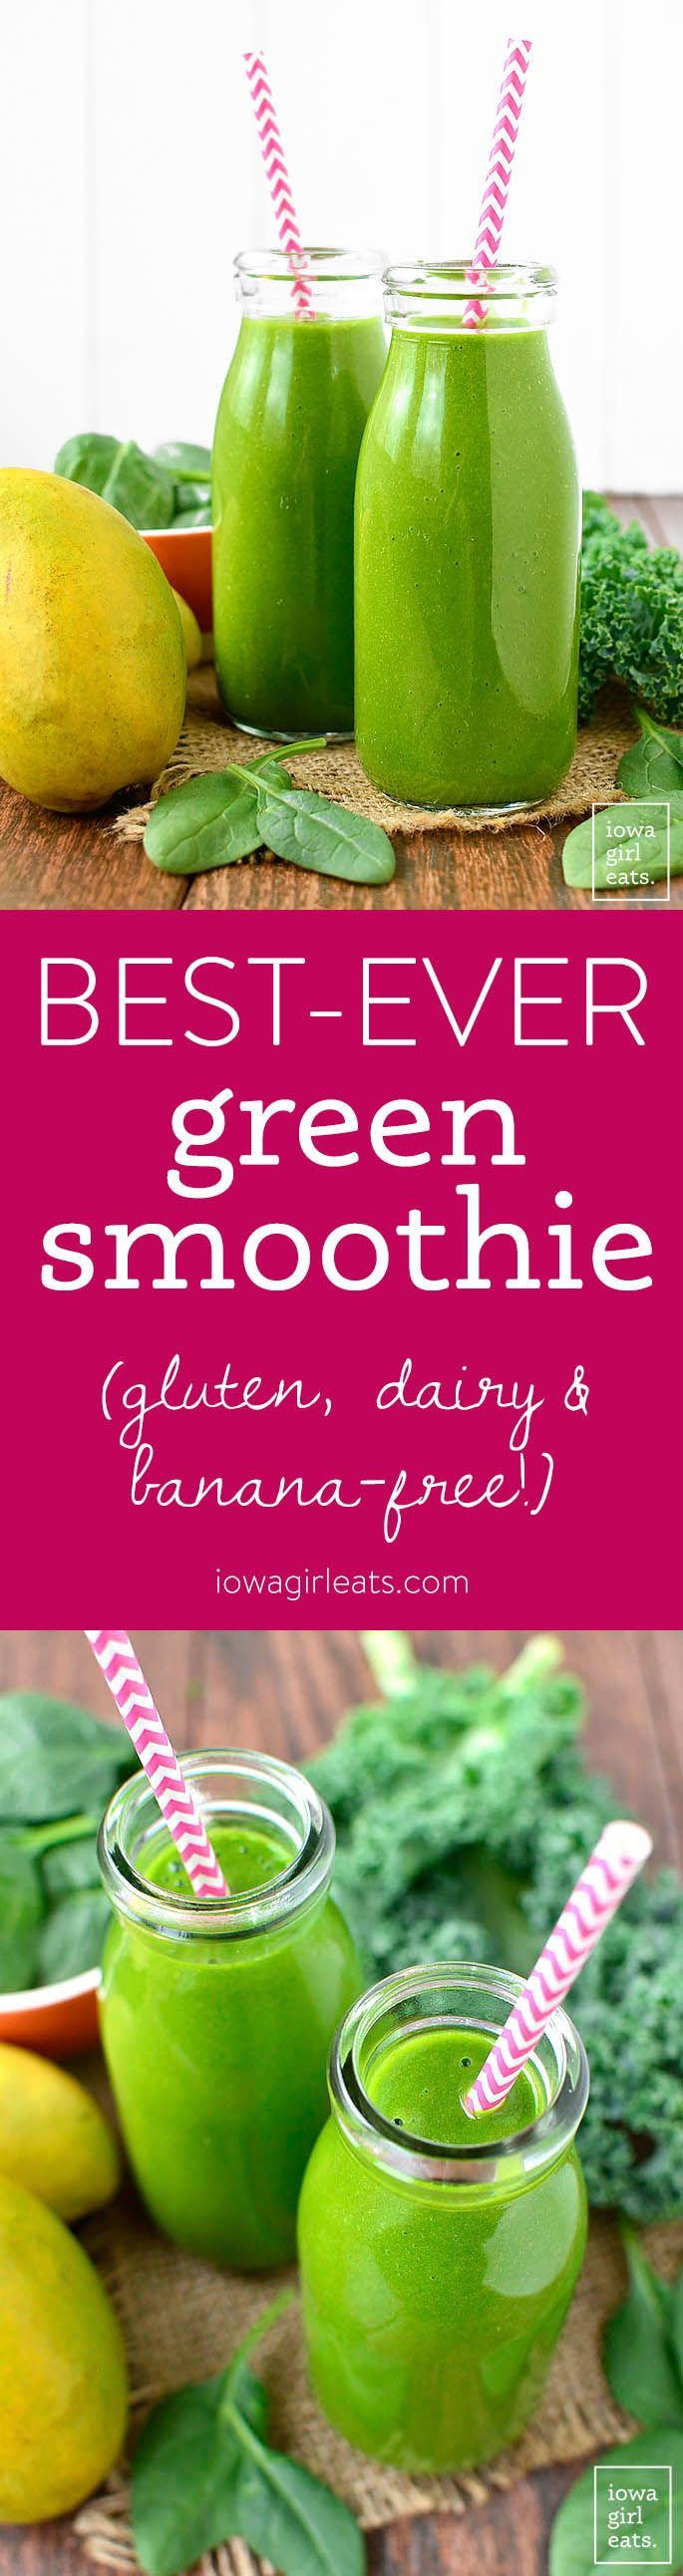 4-ingredient Best-Ever Green Smoothie is gluten, dairy, and banana-free, and is the best-tasting green smoothie EVER! If you don't want to eat your dark leafy greens - drink them instead!  | iowagirleats.com